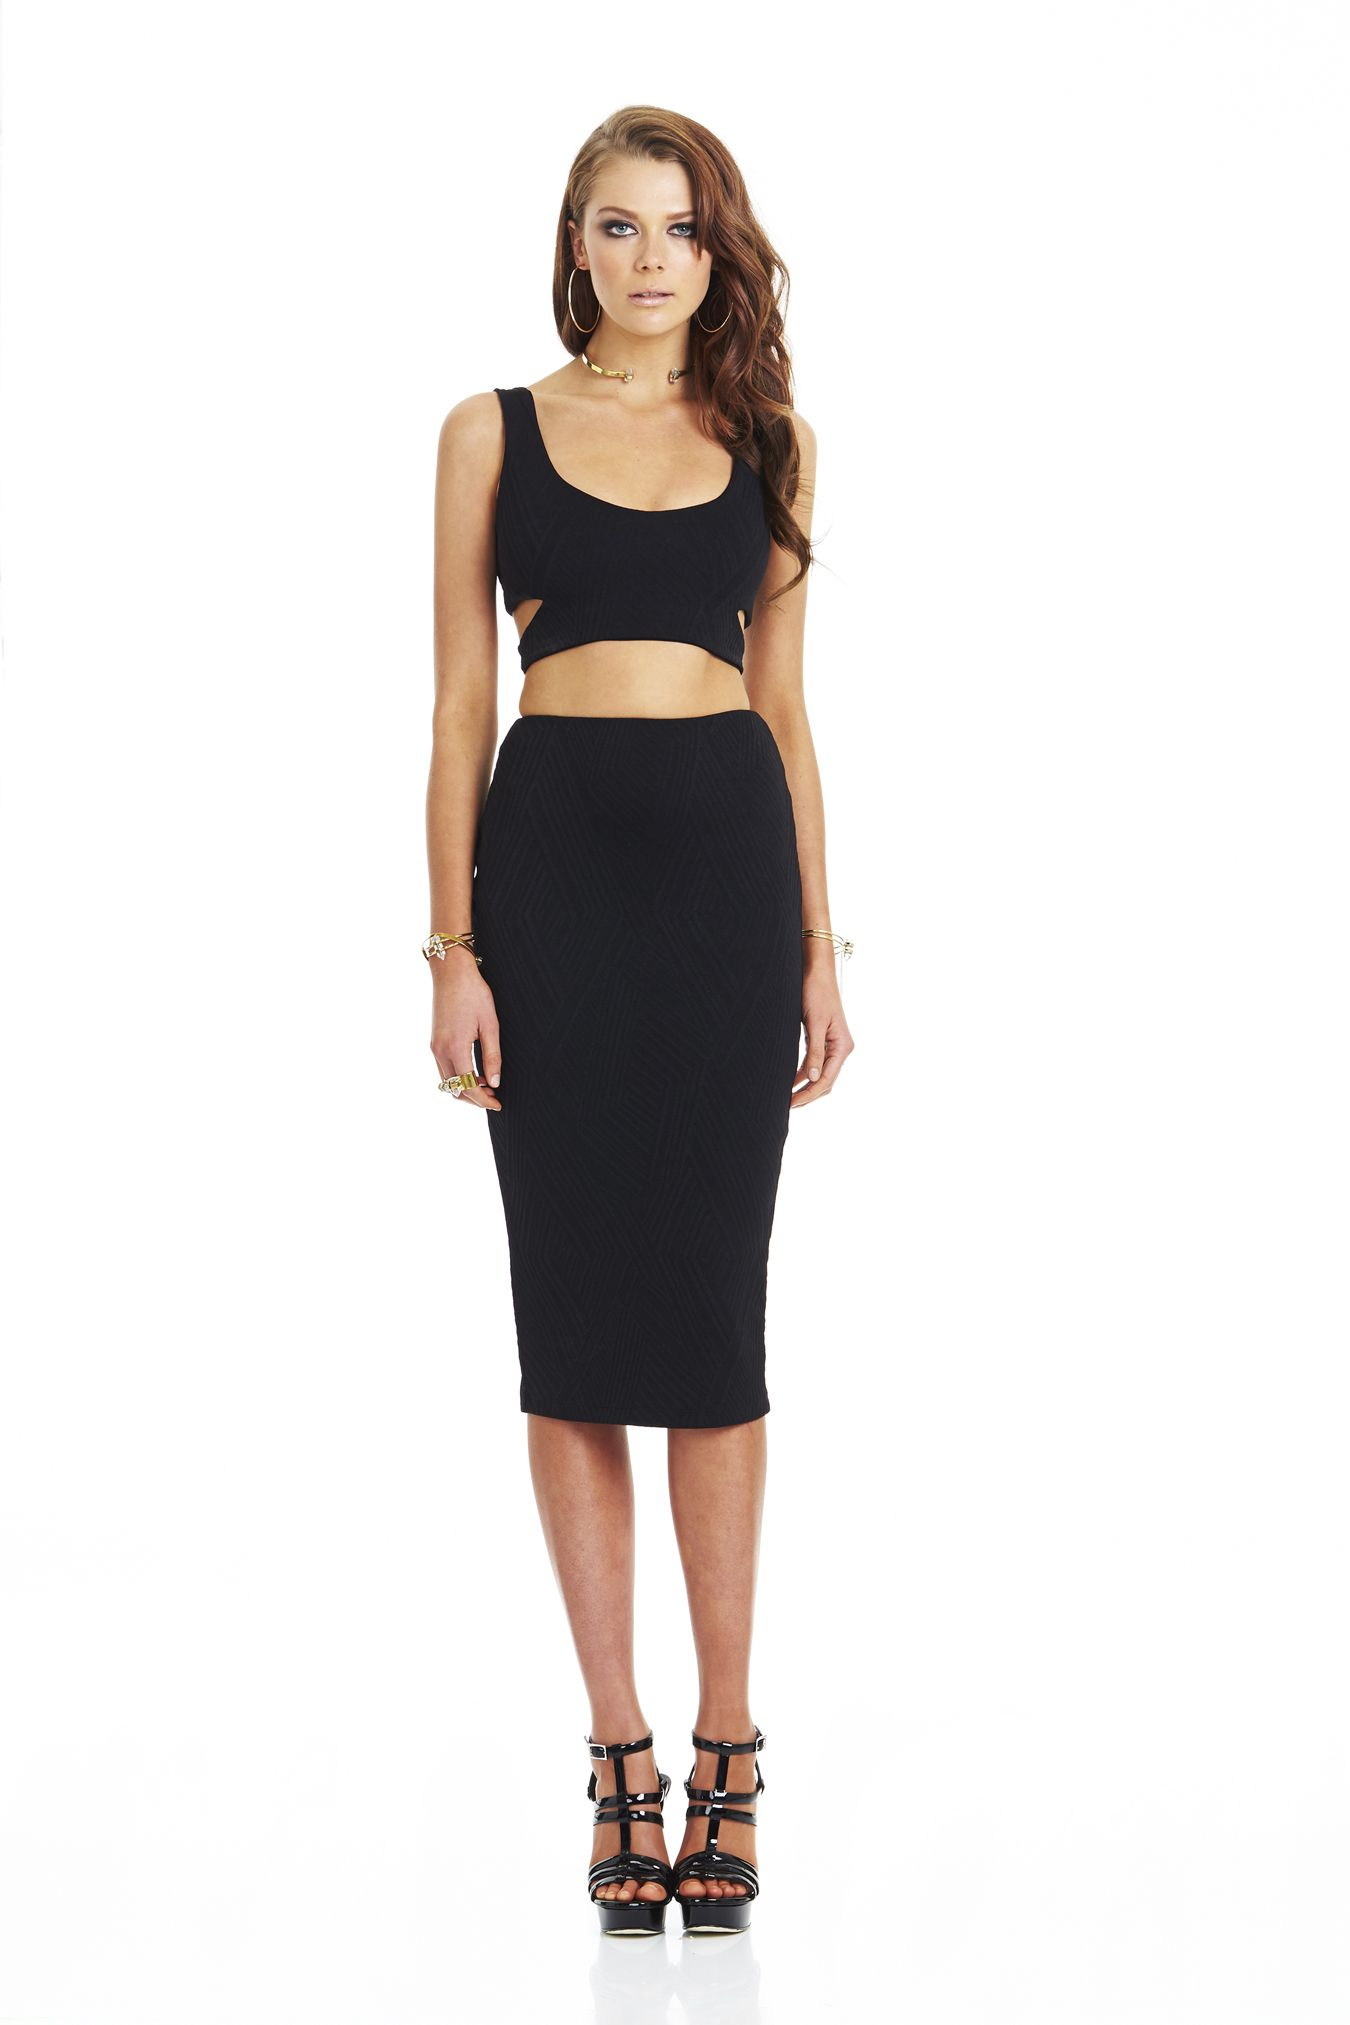 e69abd1930ed0b Uptown Girl Knit Crop Black & Uptown Knit Pencil Skirt Black #nookie ...